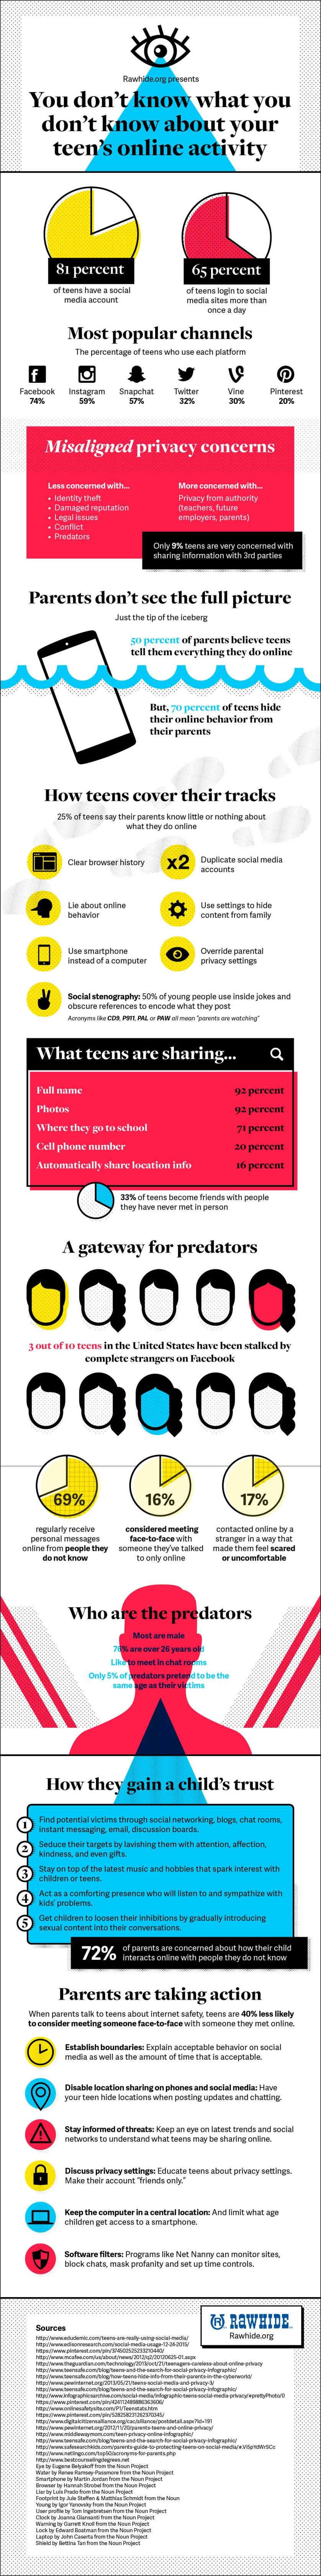 privacy-infographic-20151202-01-4